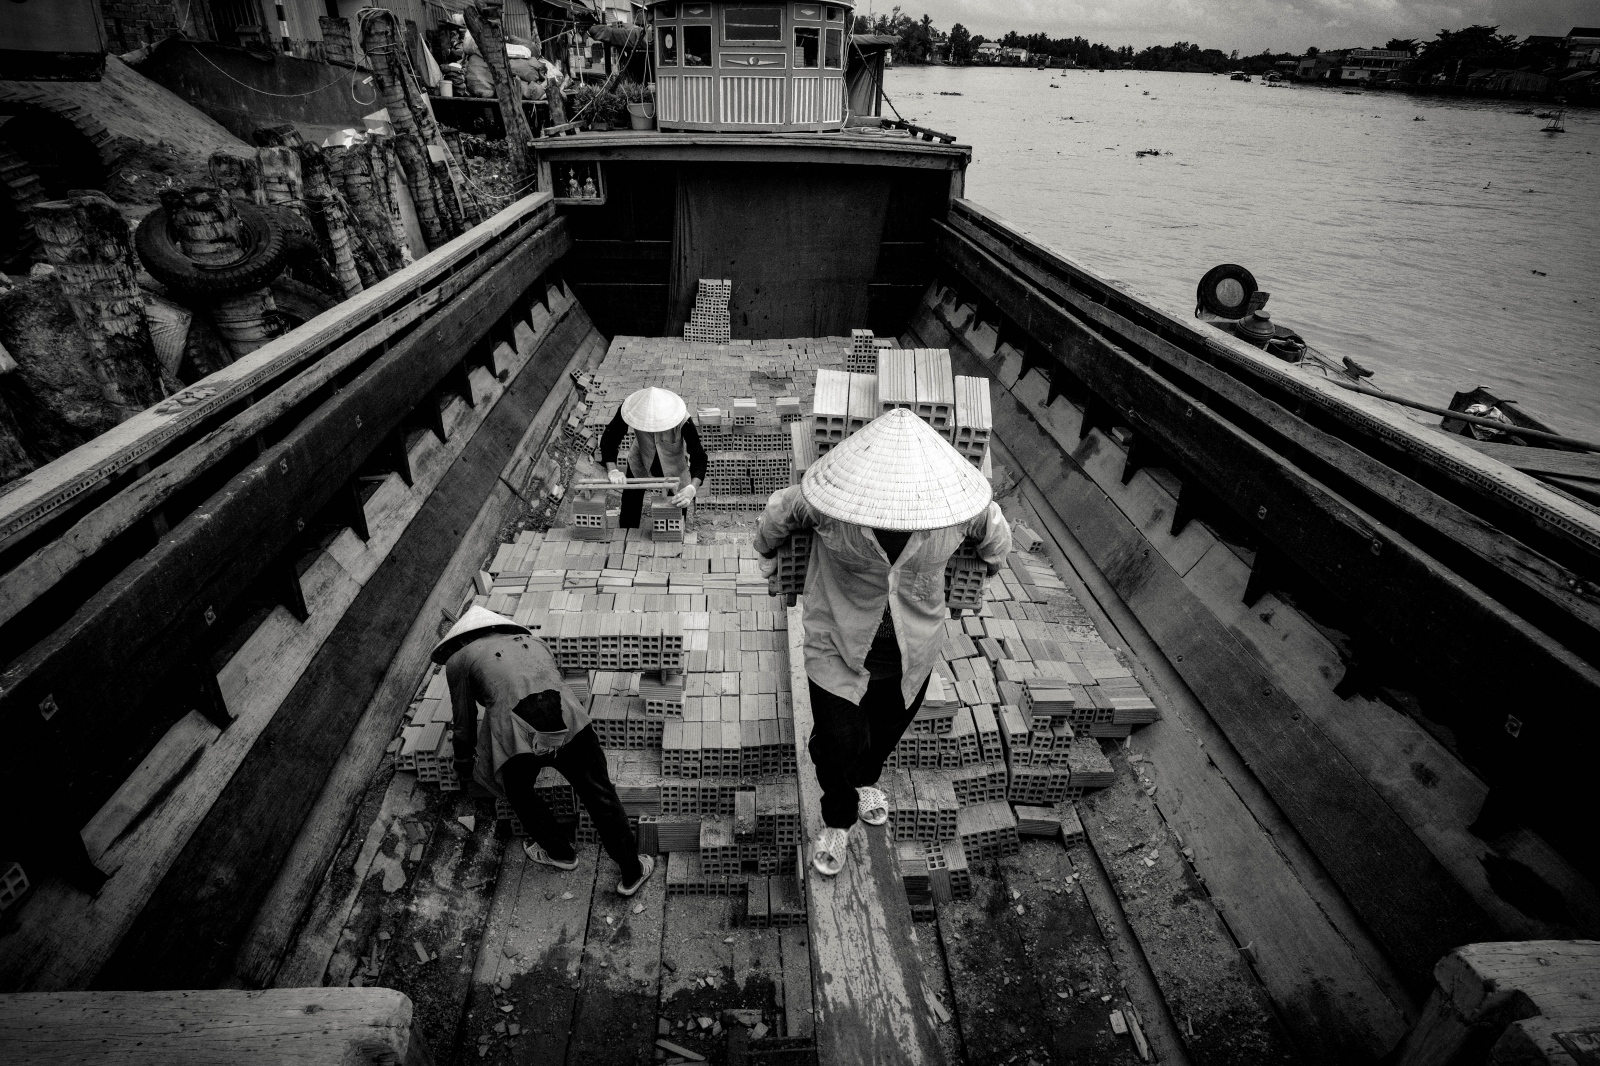 Photography image -  Brick Barge, Can Tho, Mekong Delta